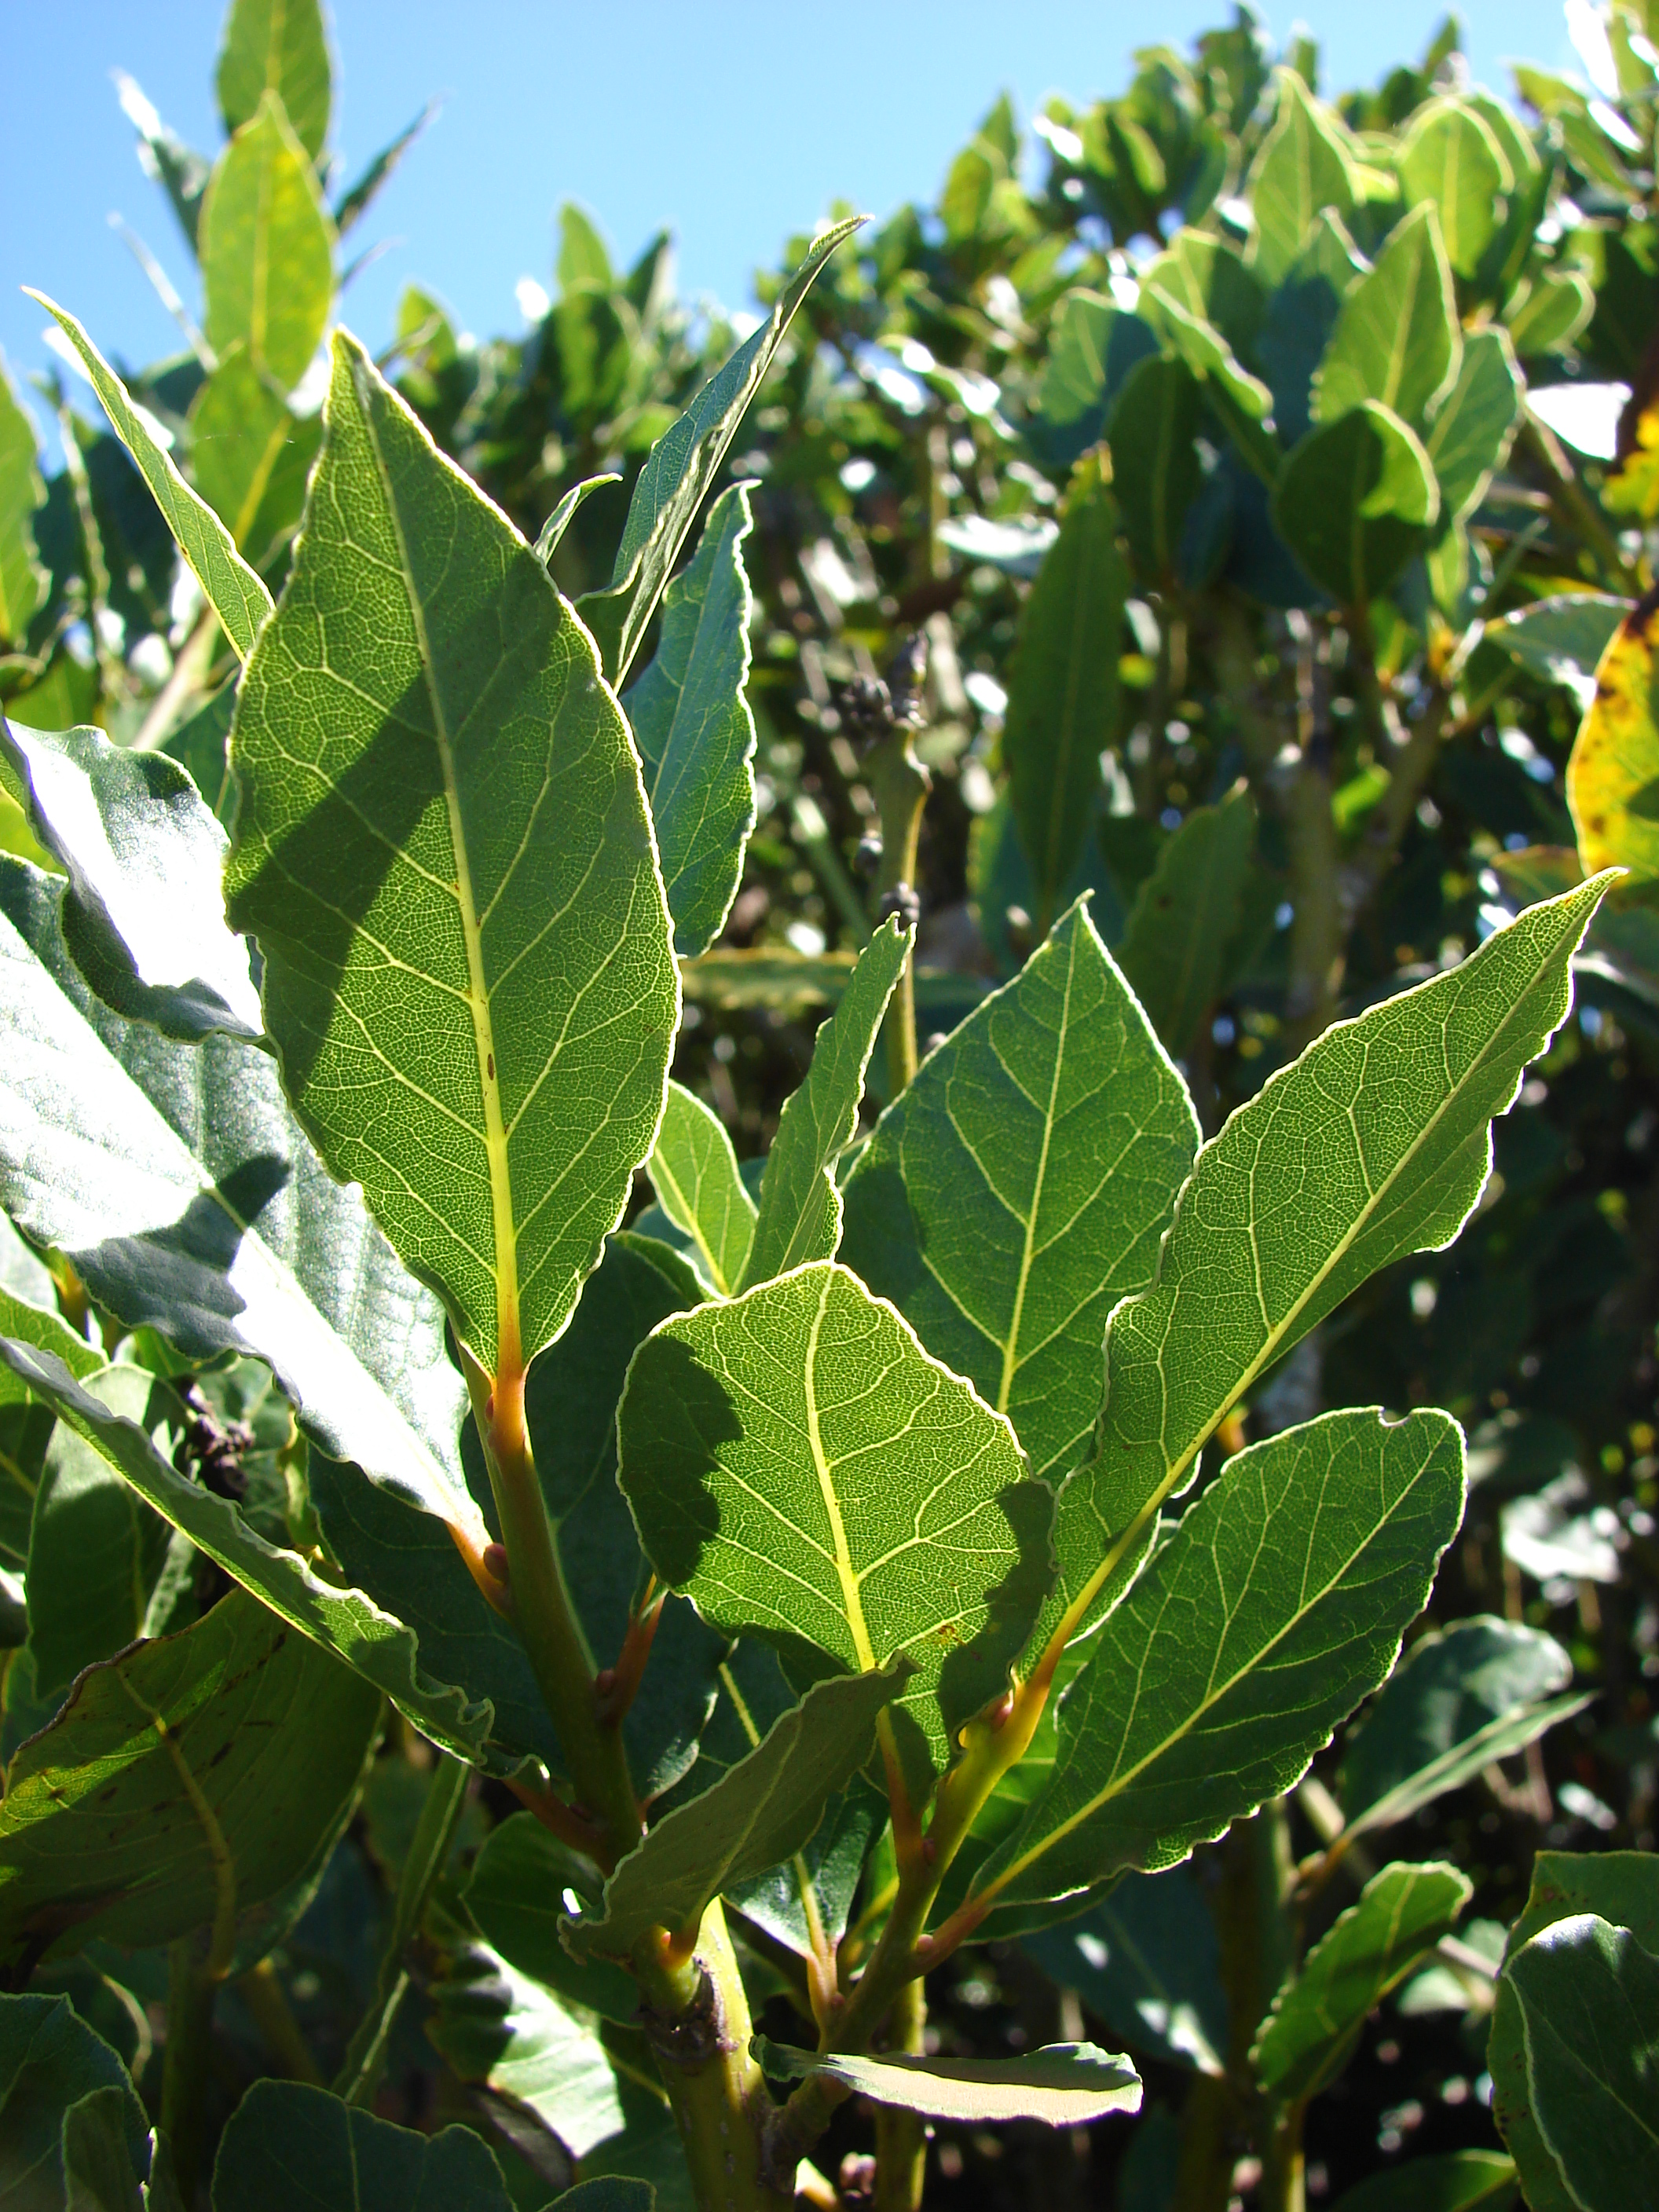 laurel herb